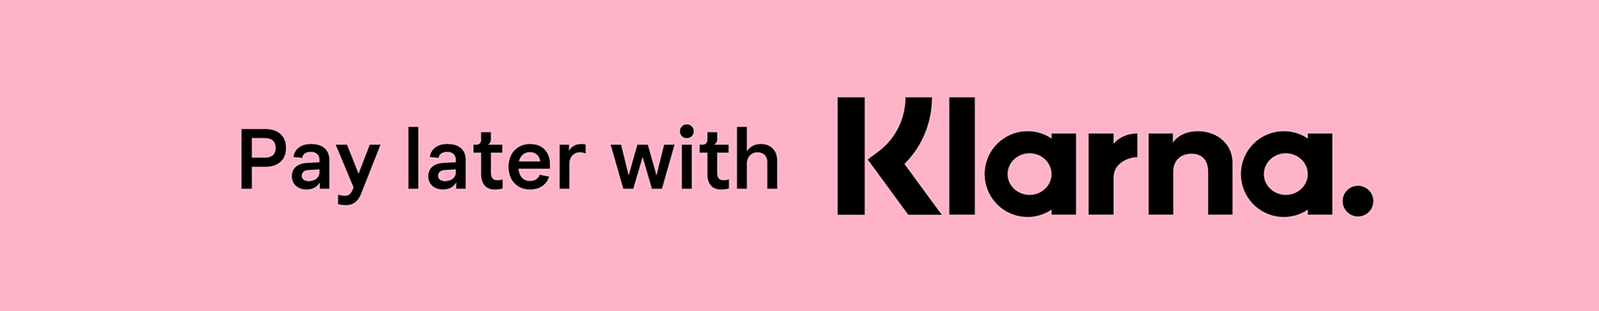 pay-later-with-klarna